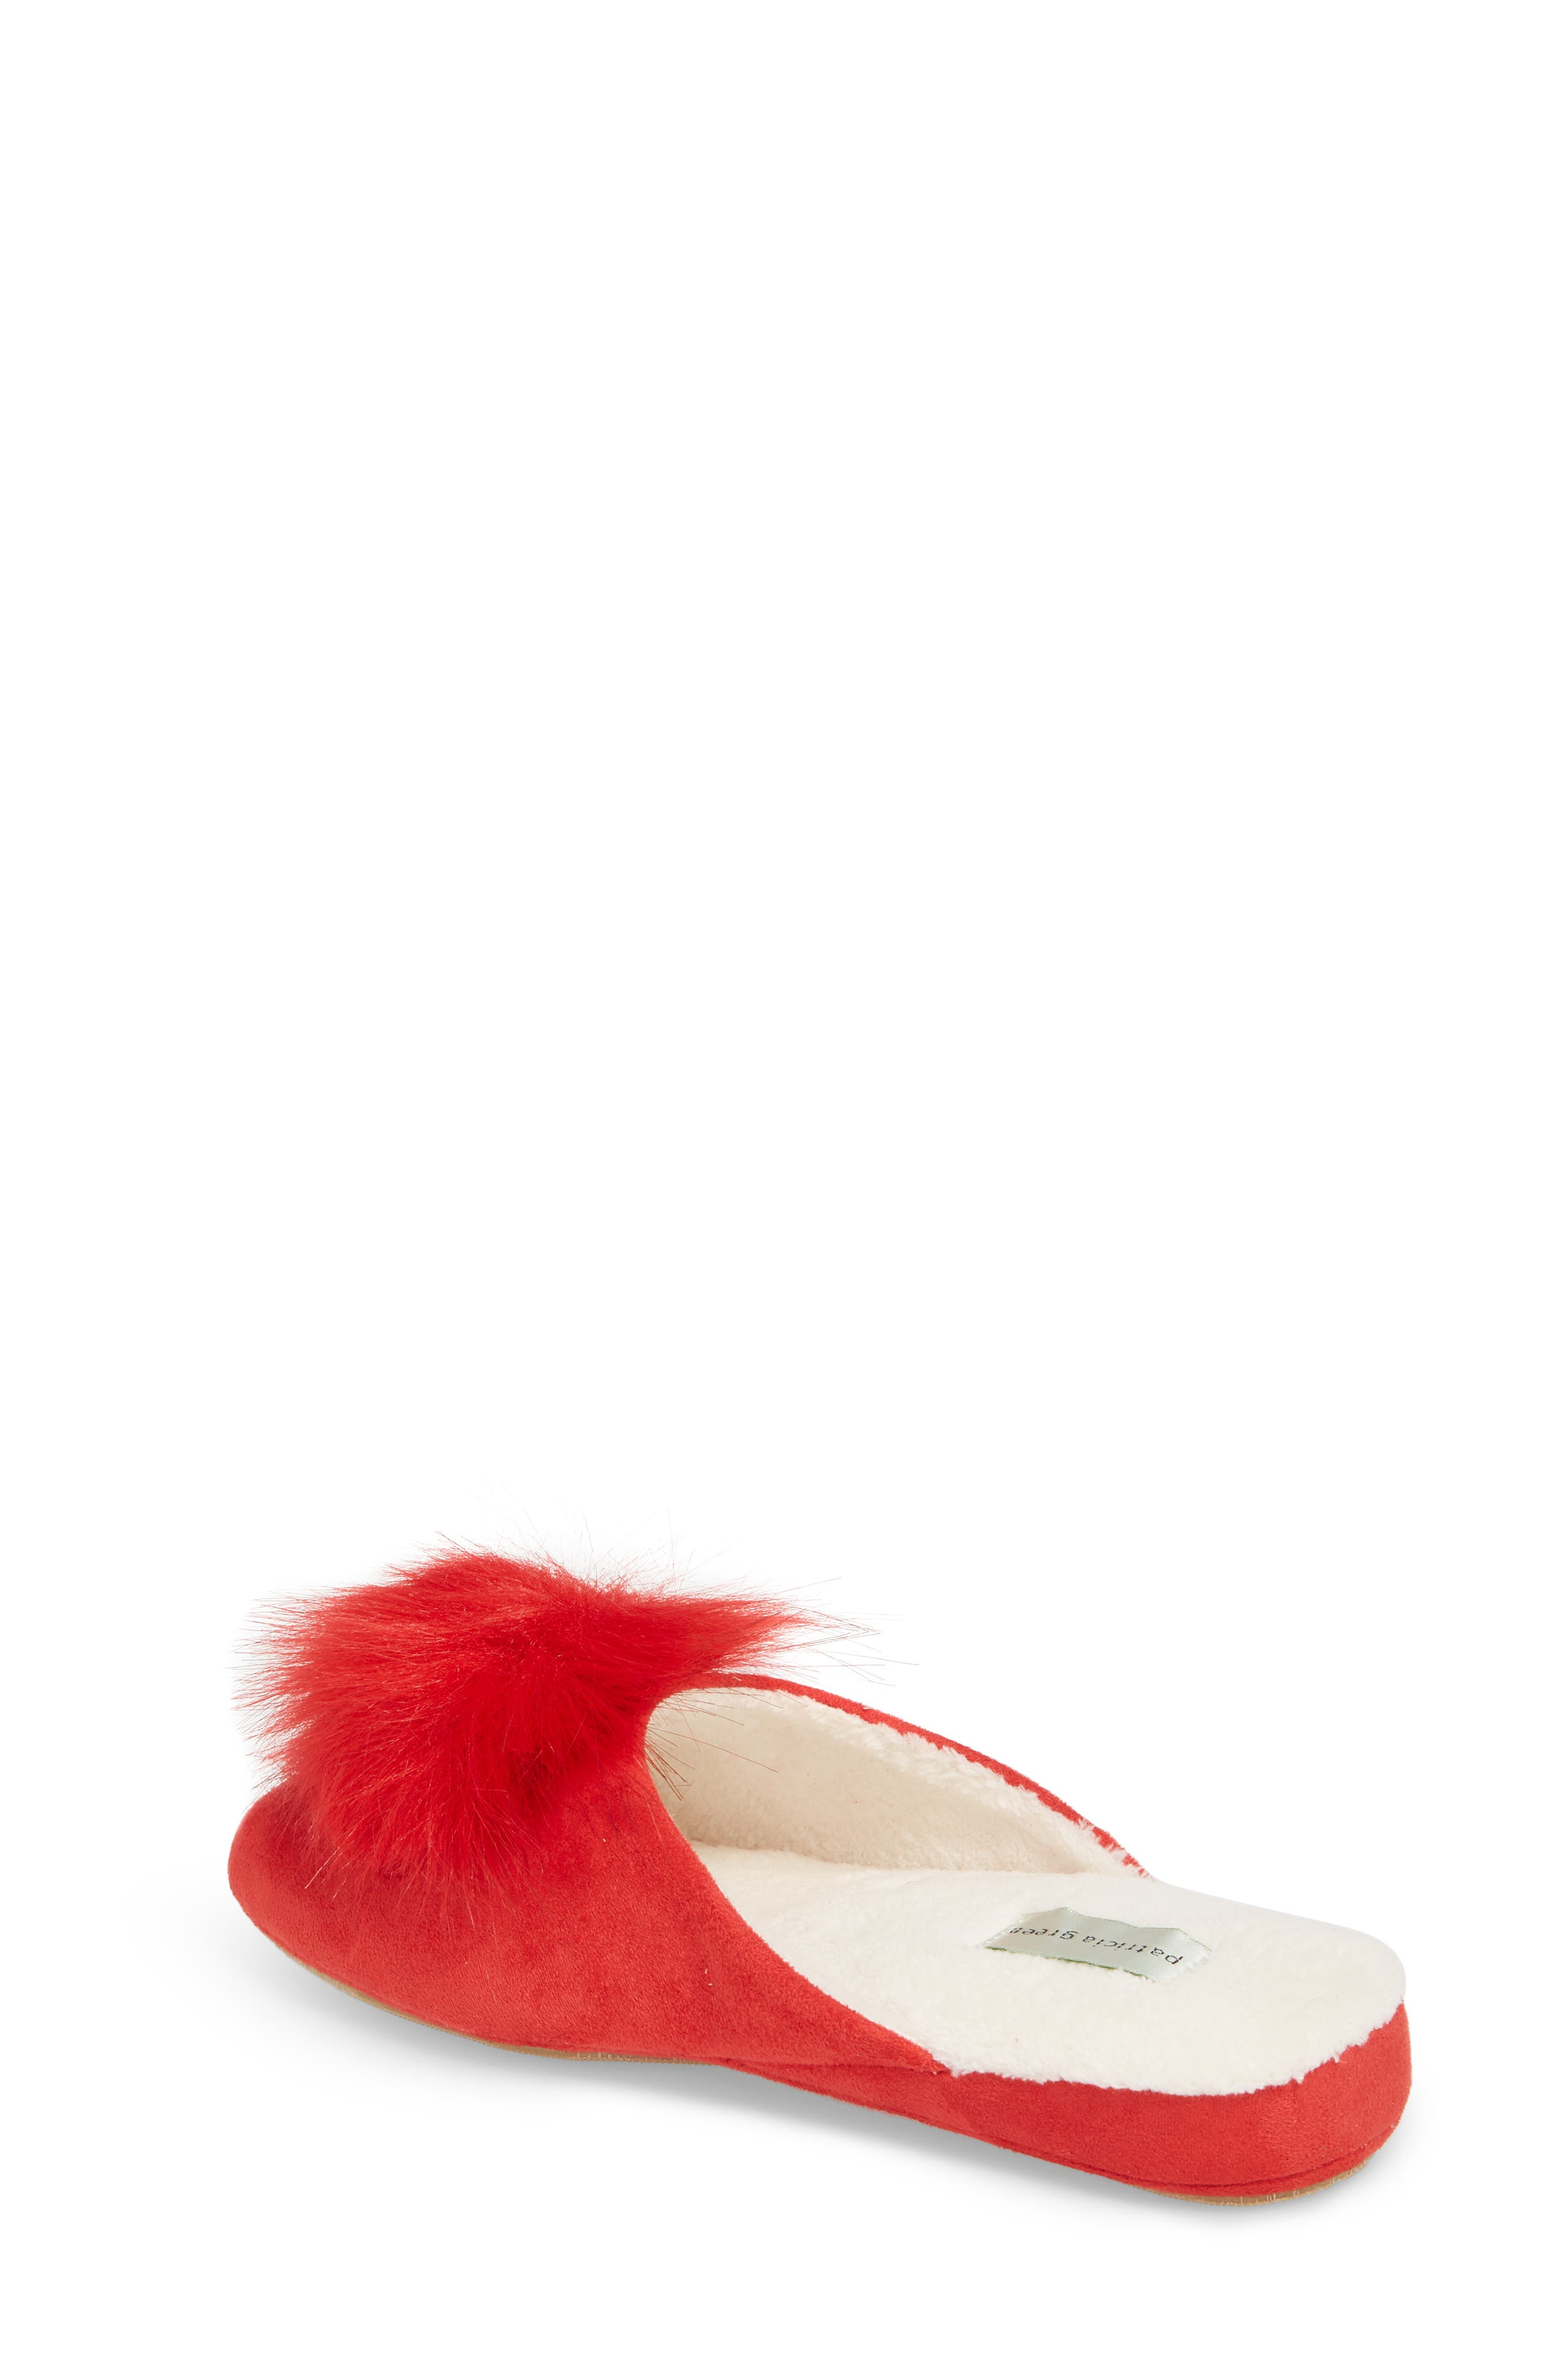 Pretty Pouf Slipper,                             Alternate thumbnail 2, color,                             Red Fabric